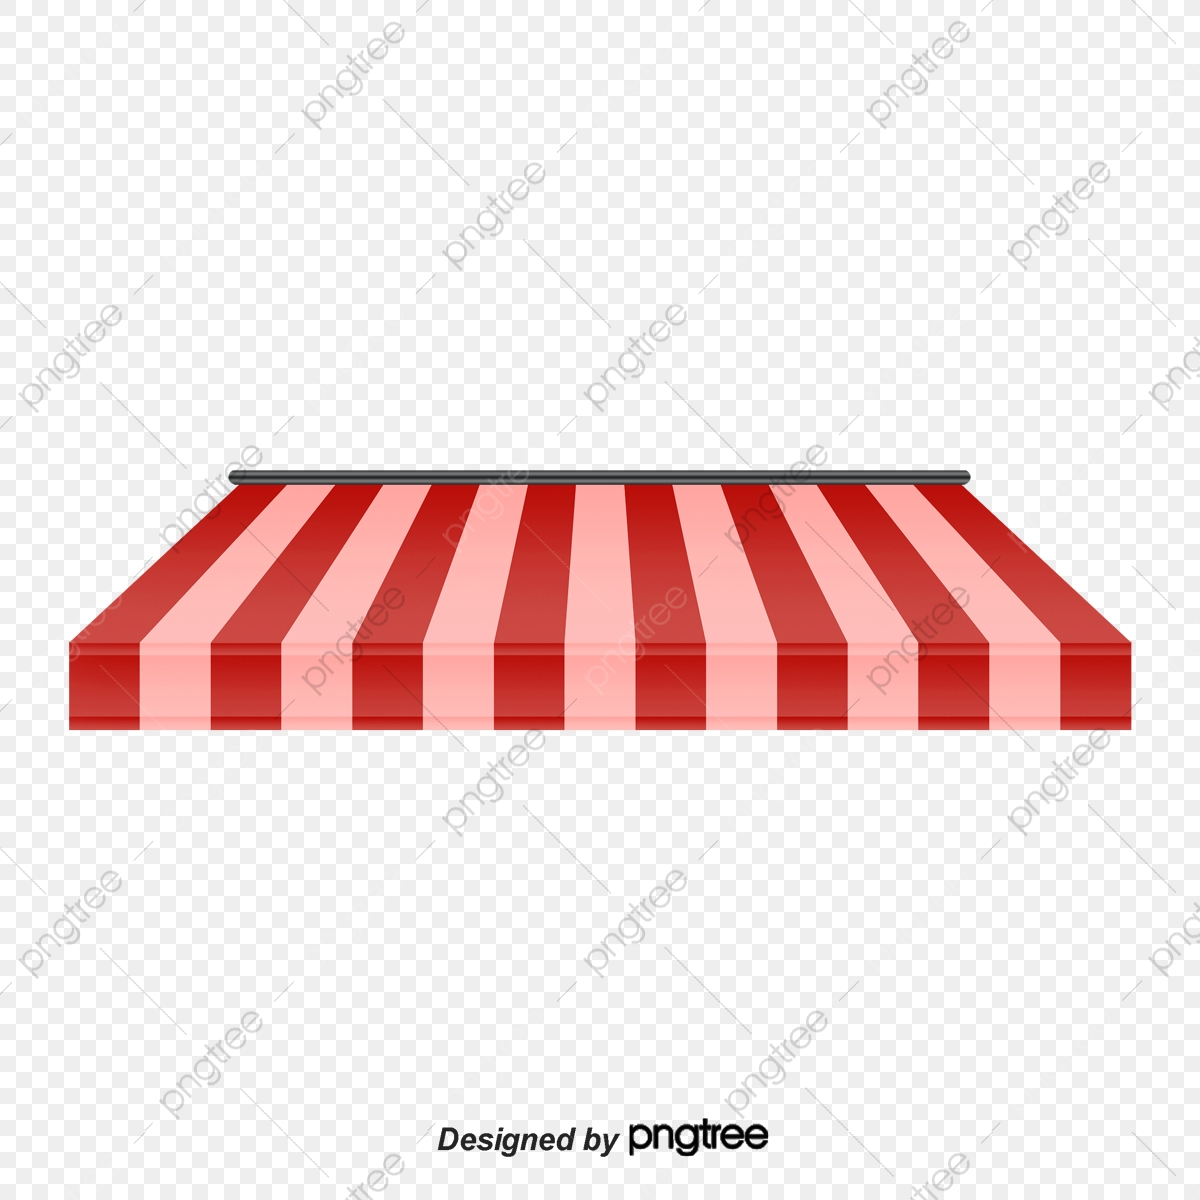 Red And White Striped Awning, Awning, Png Picture, Leave The.